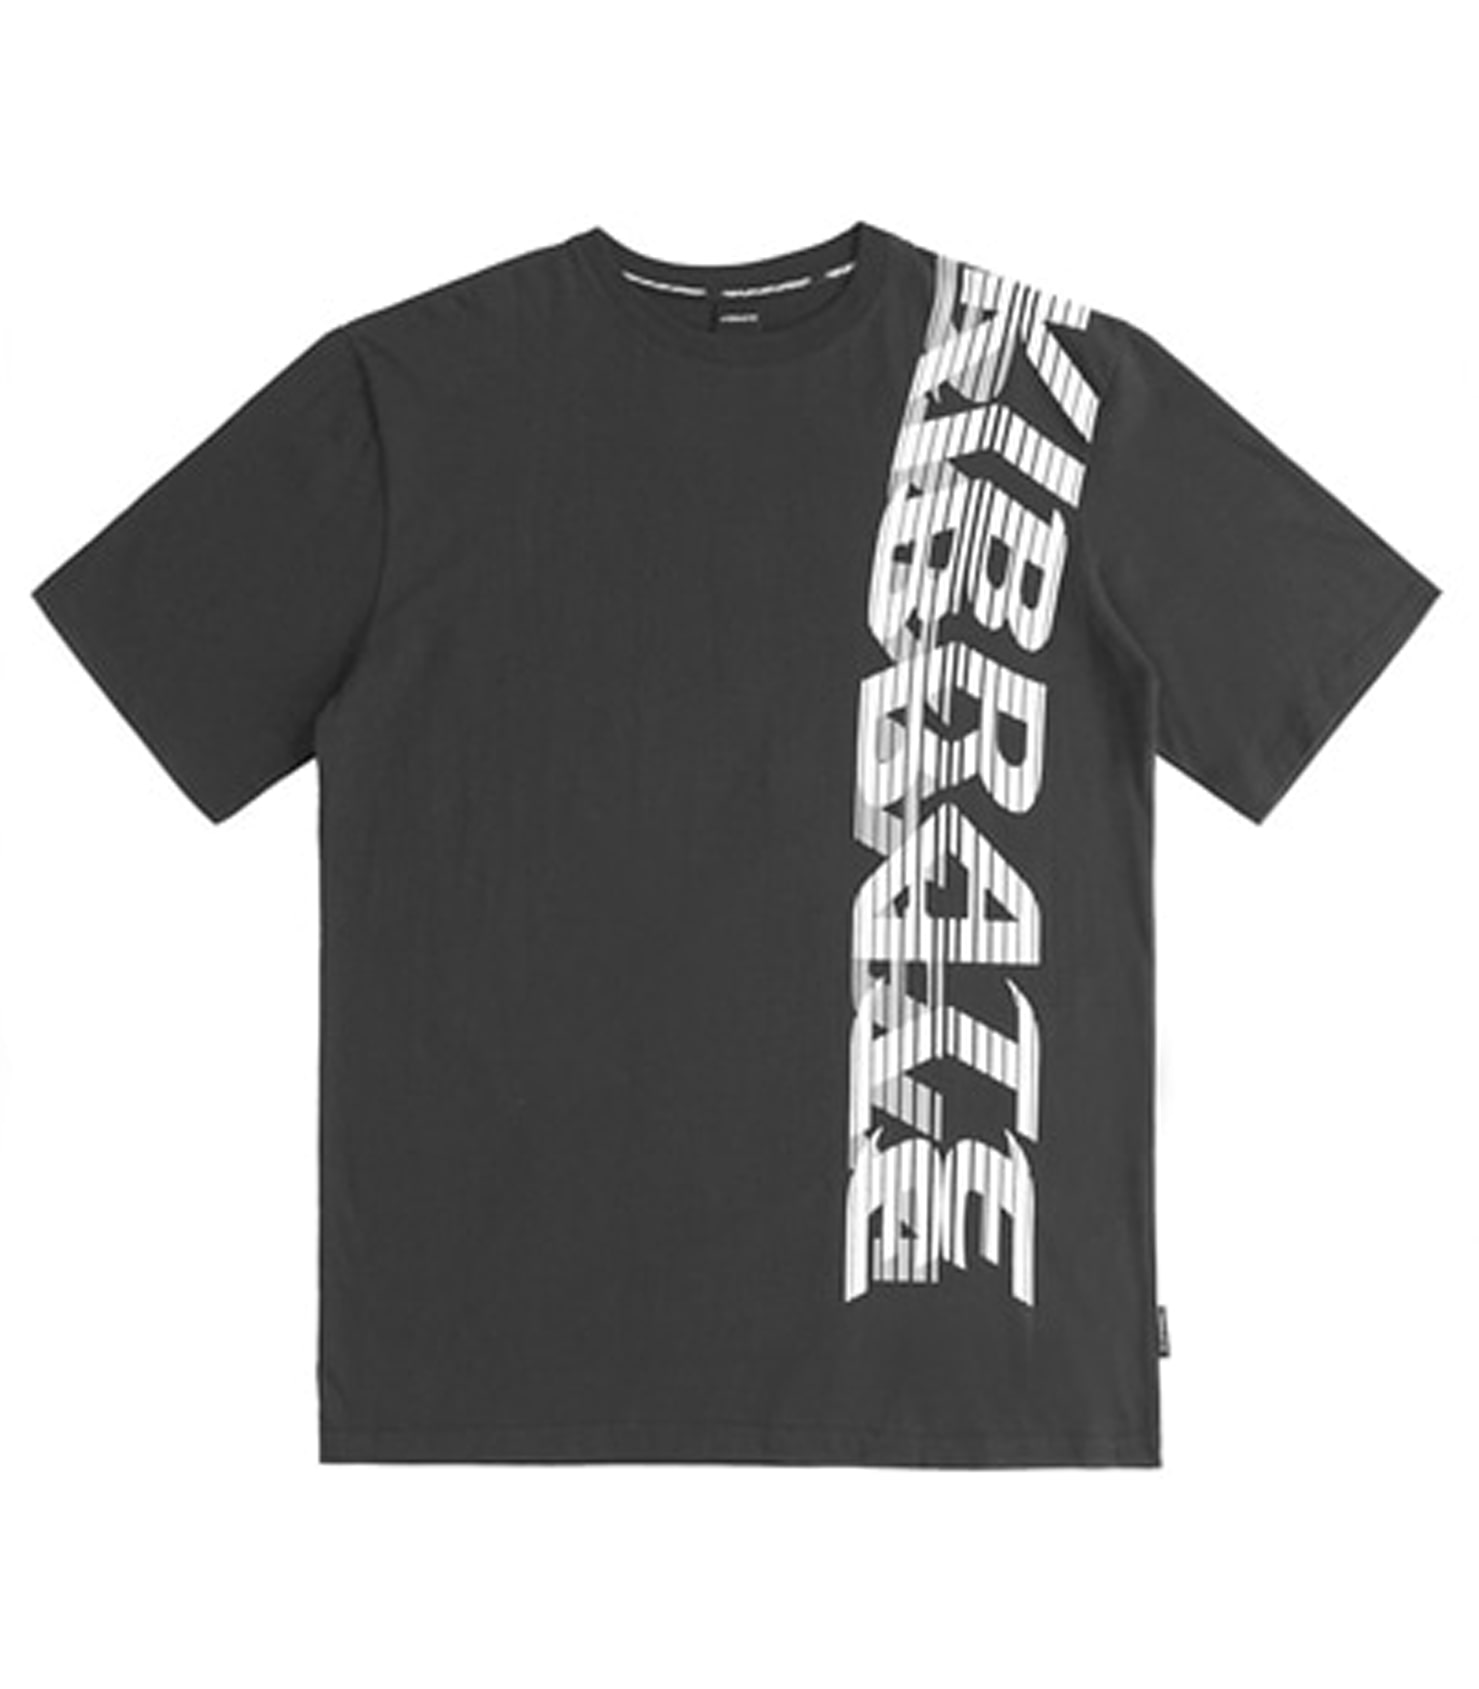 SIDE BIG LOGO T-SHIRT (BLACK)